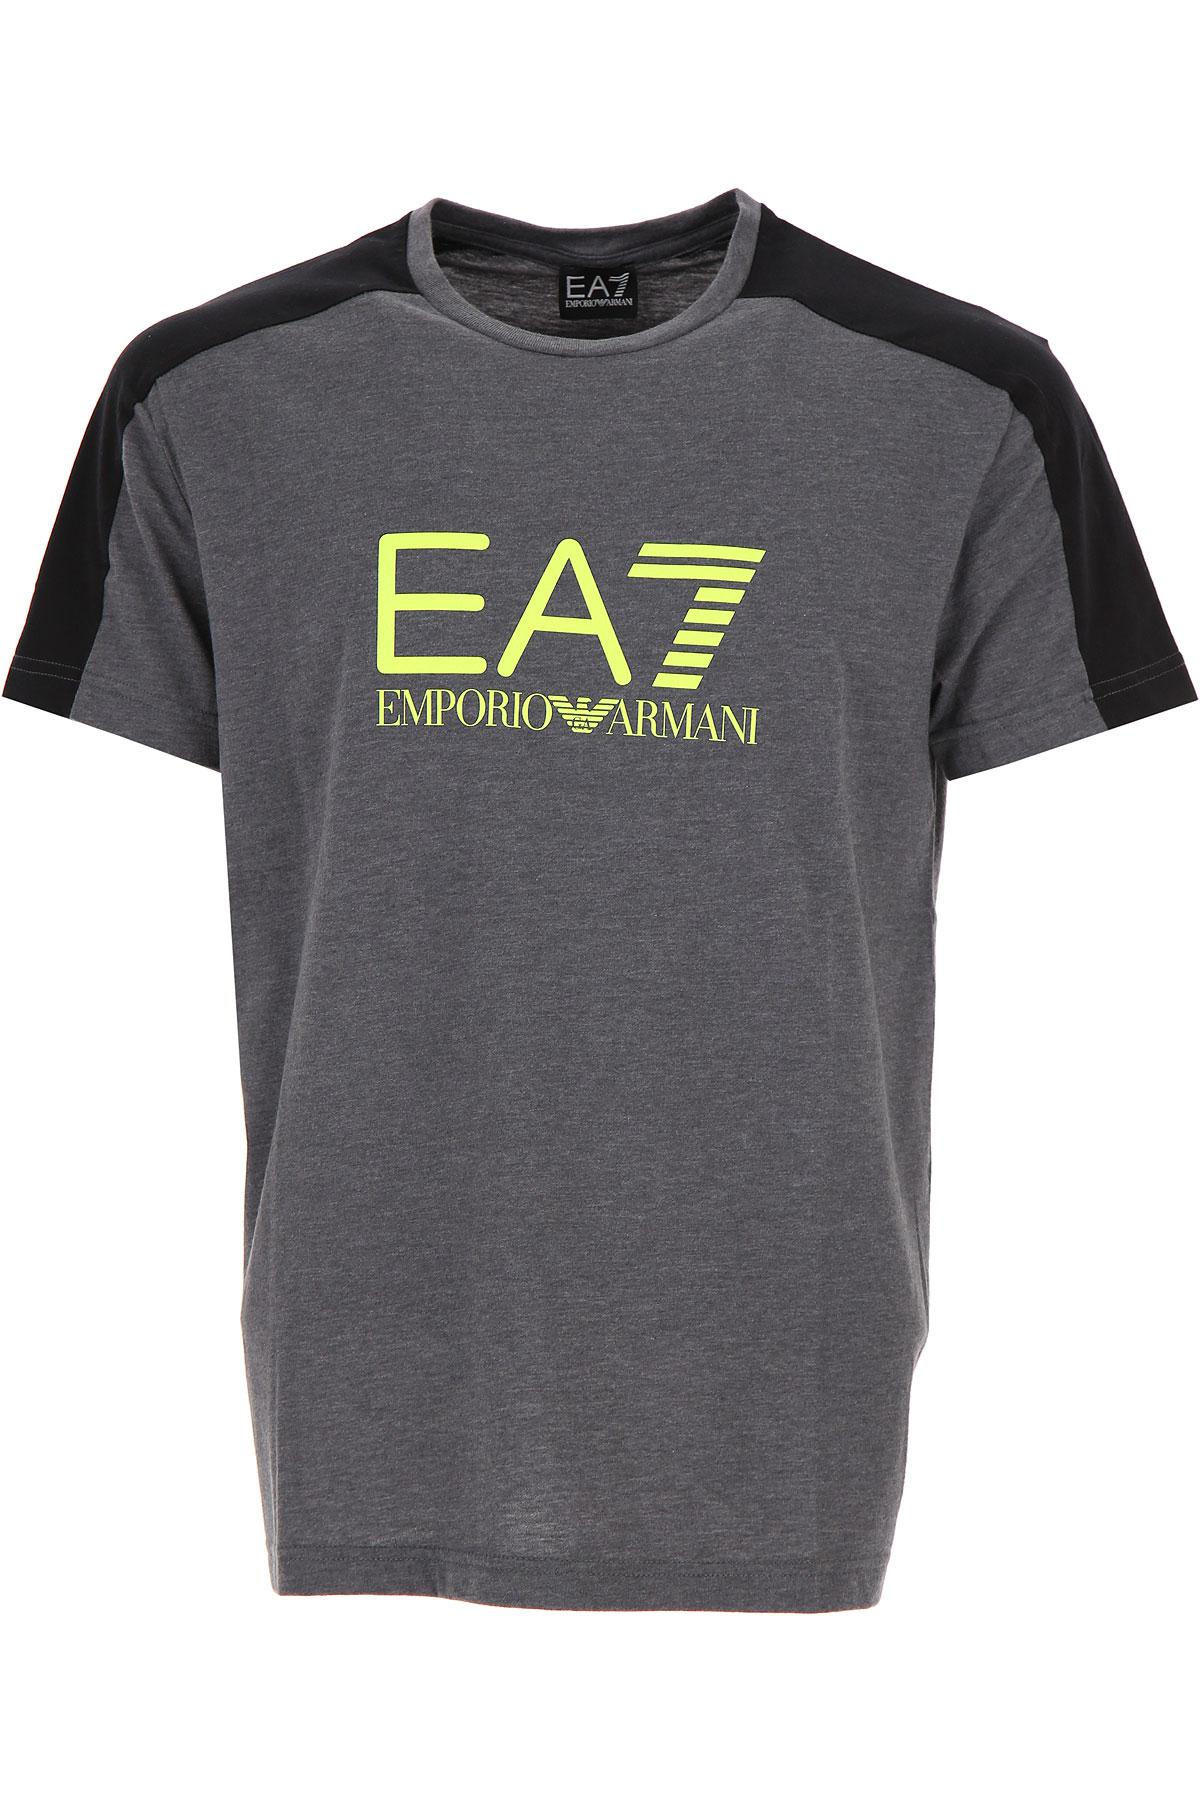 Lyst emporio armani clothing for men in gray for men for Lands end logo shirts